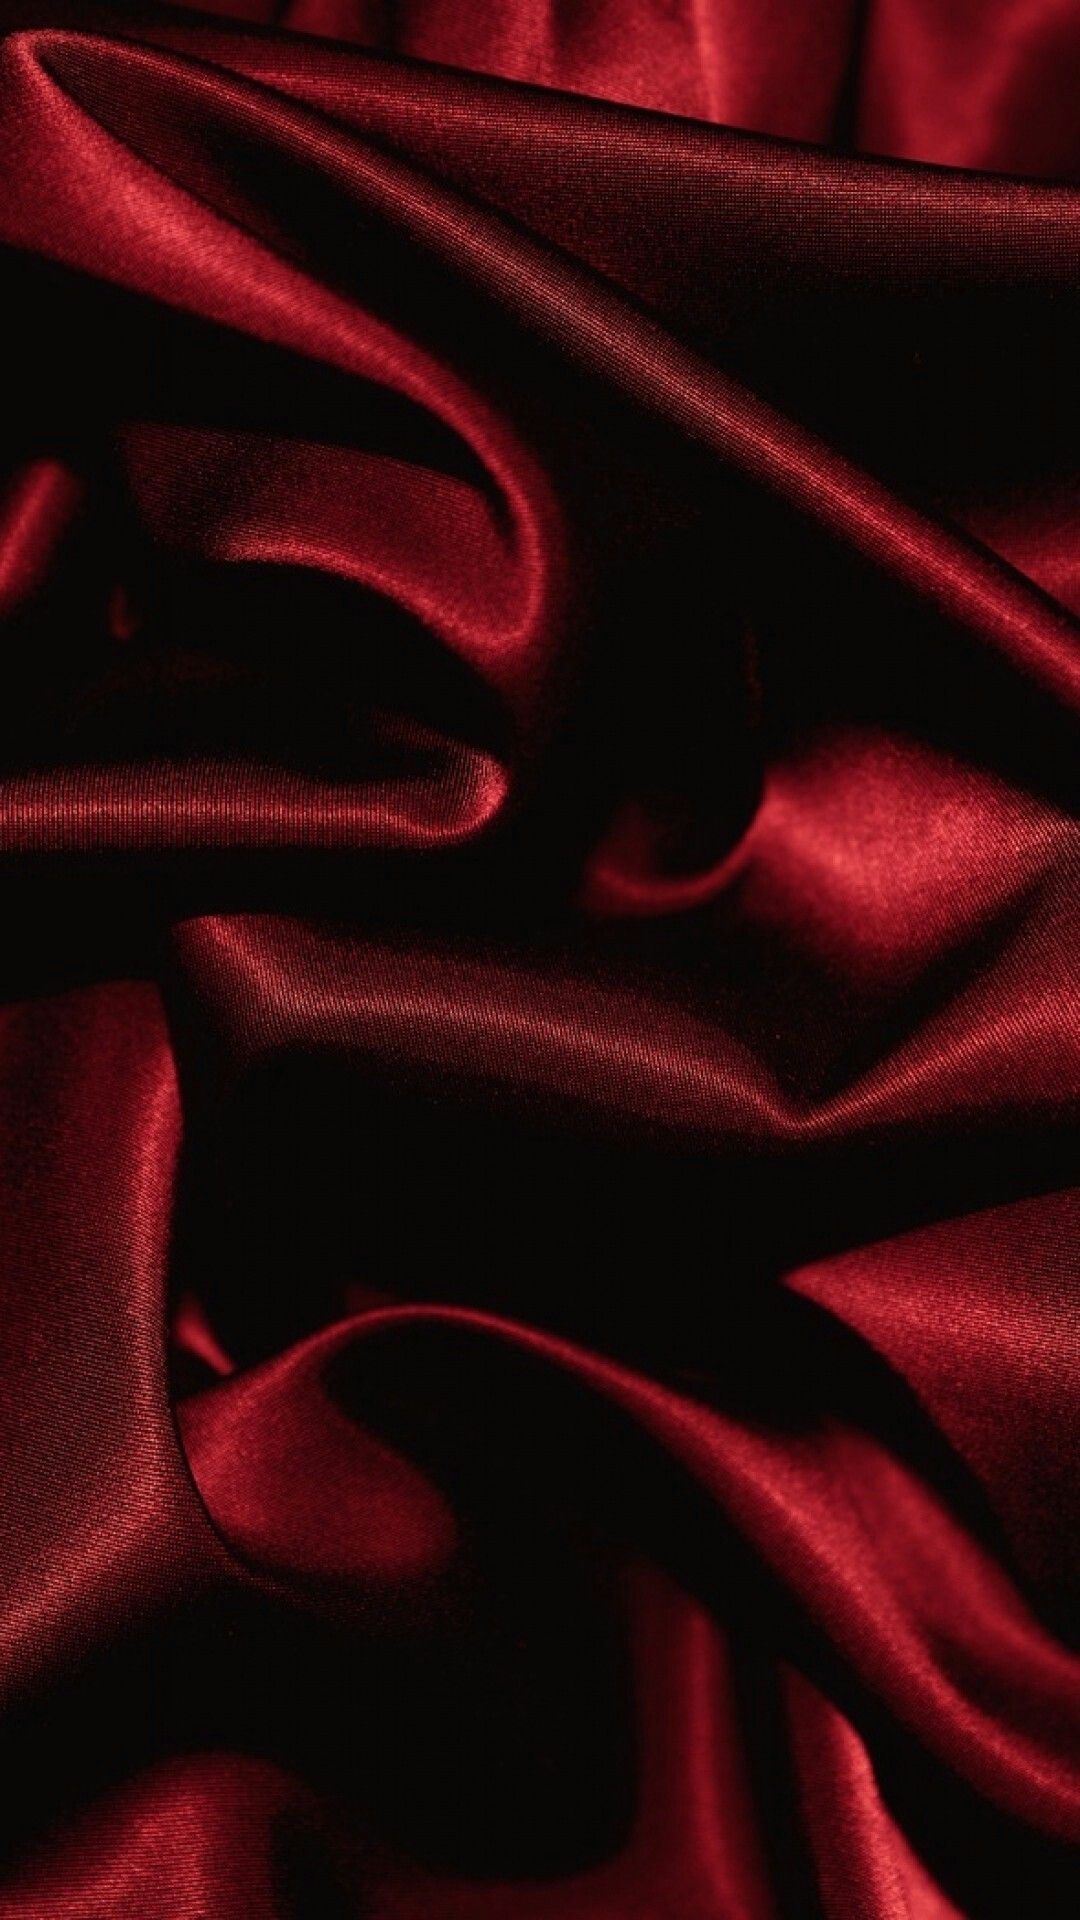 Blood red fabric Red and black background, Maroon